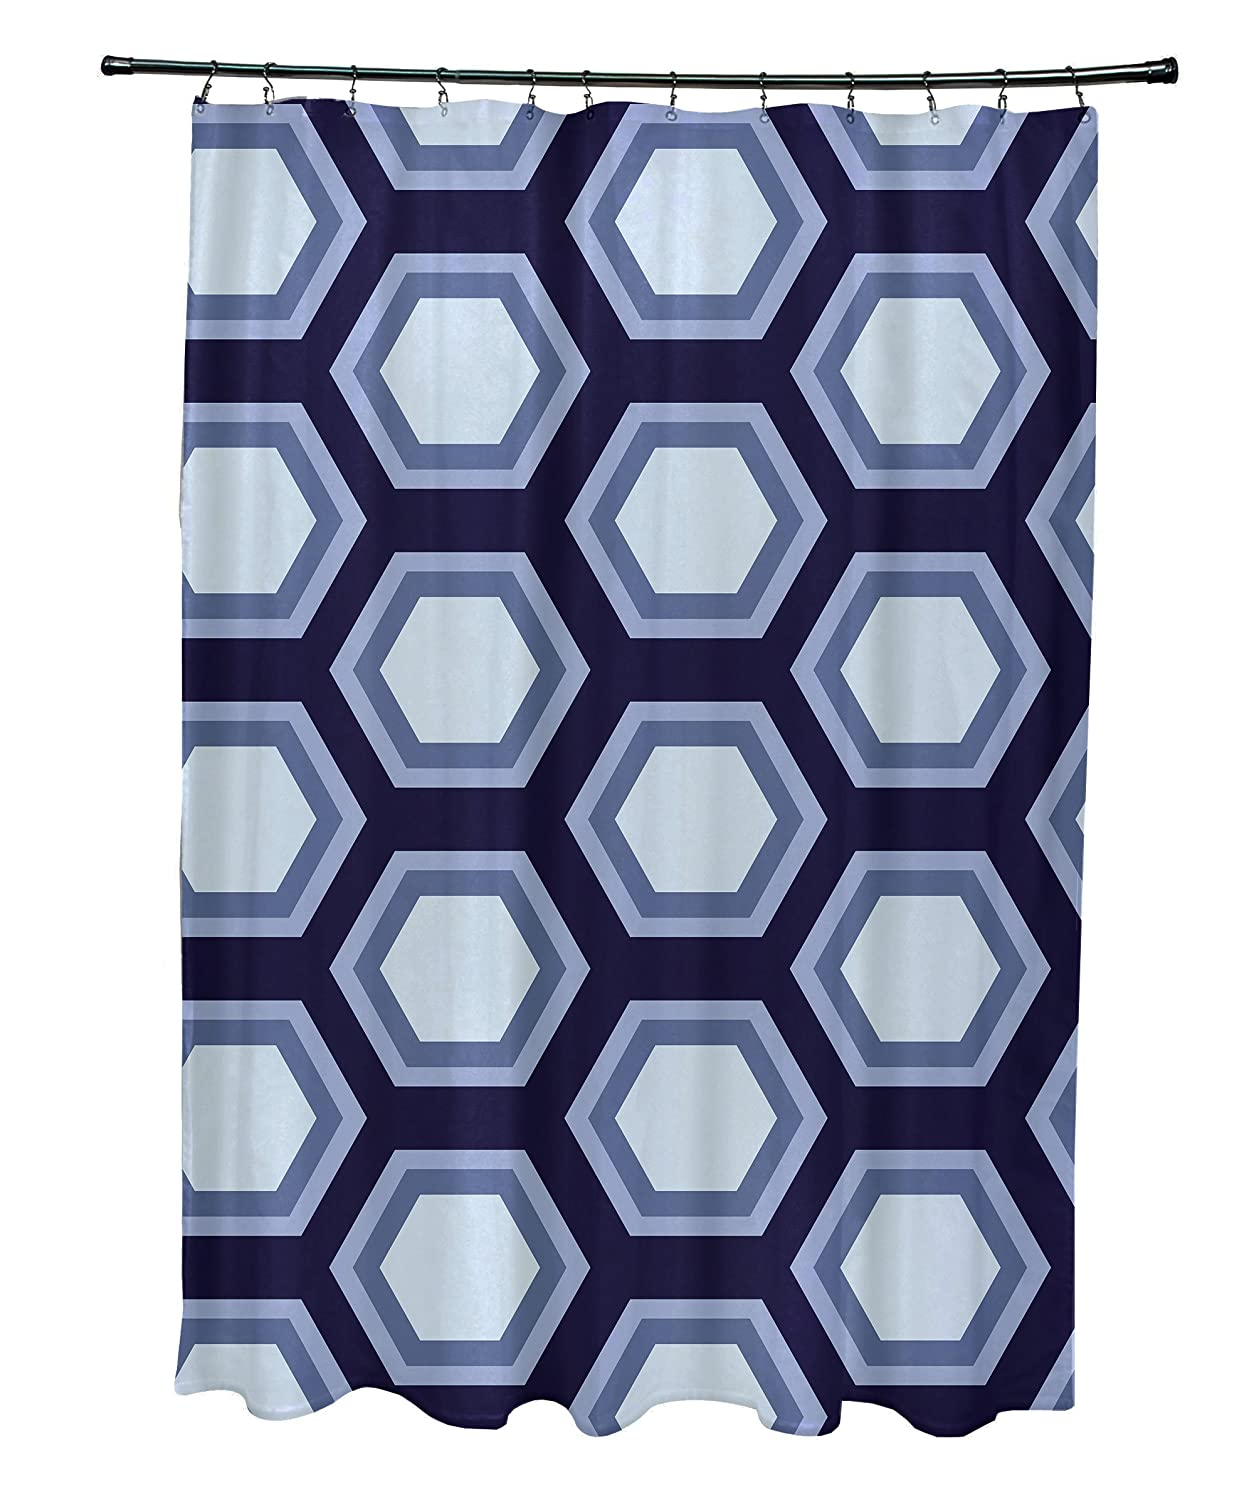 Bewitching E by design Hex Appeal Geometric Print Shower Curtain